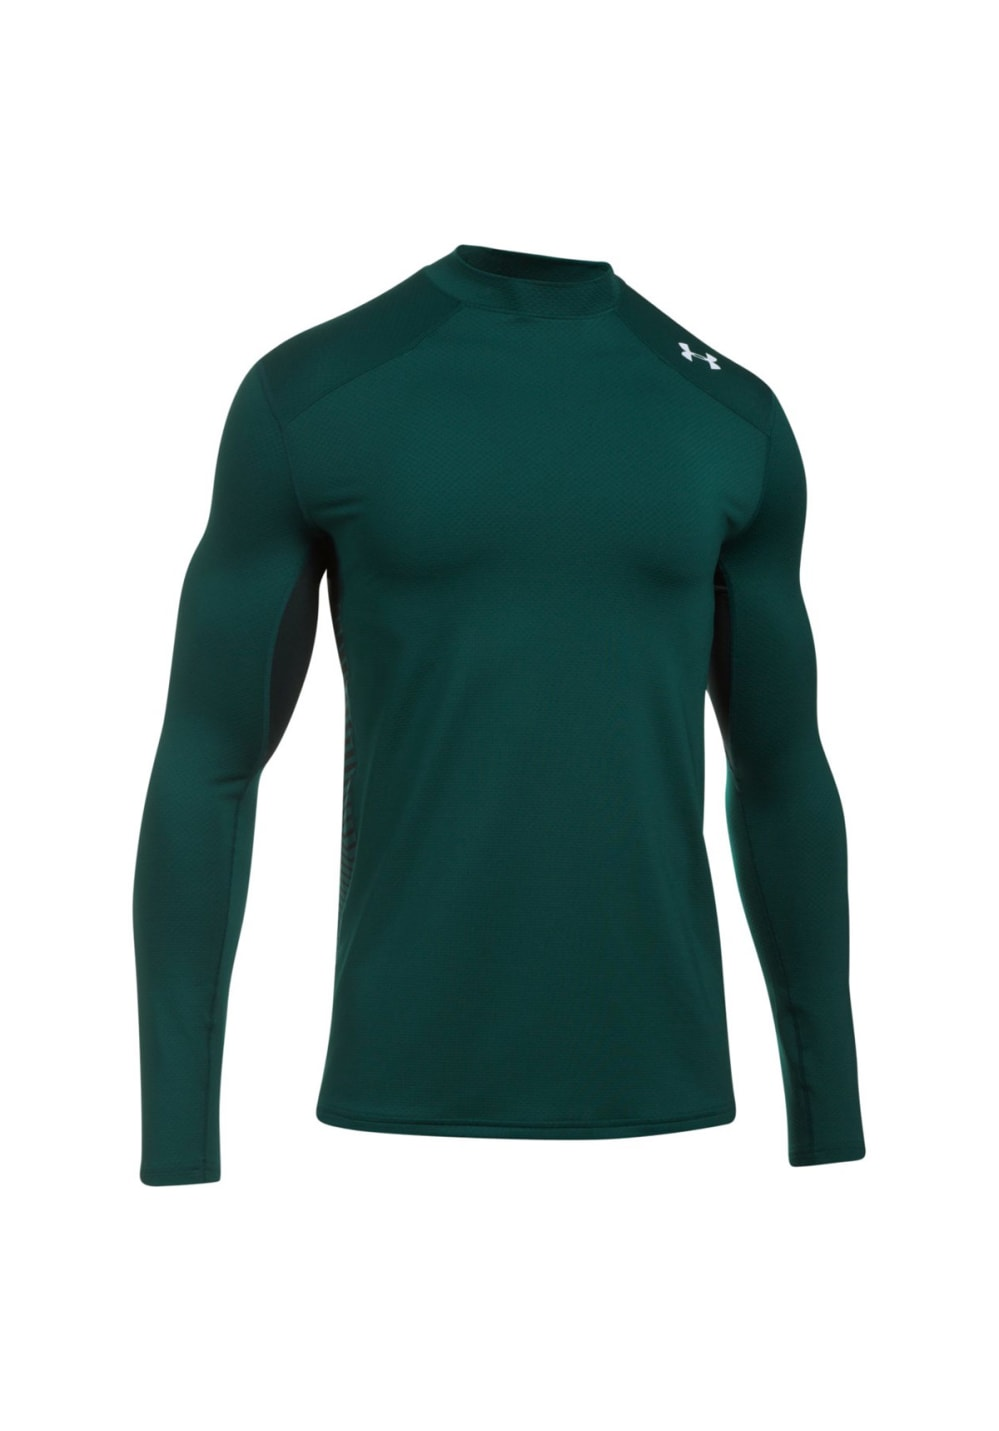 9a67375d97 Under Armour ColdGear Reactor Fitted Long Sleeve - Fitness tops for Men -  Green